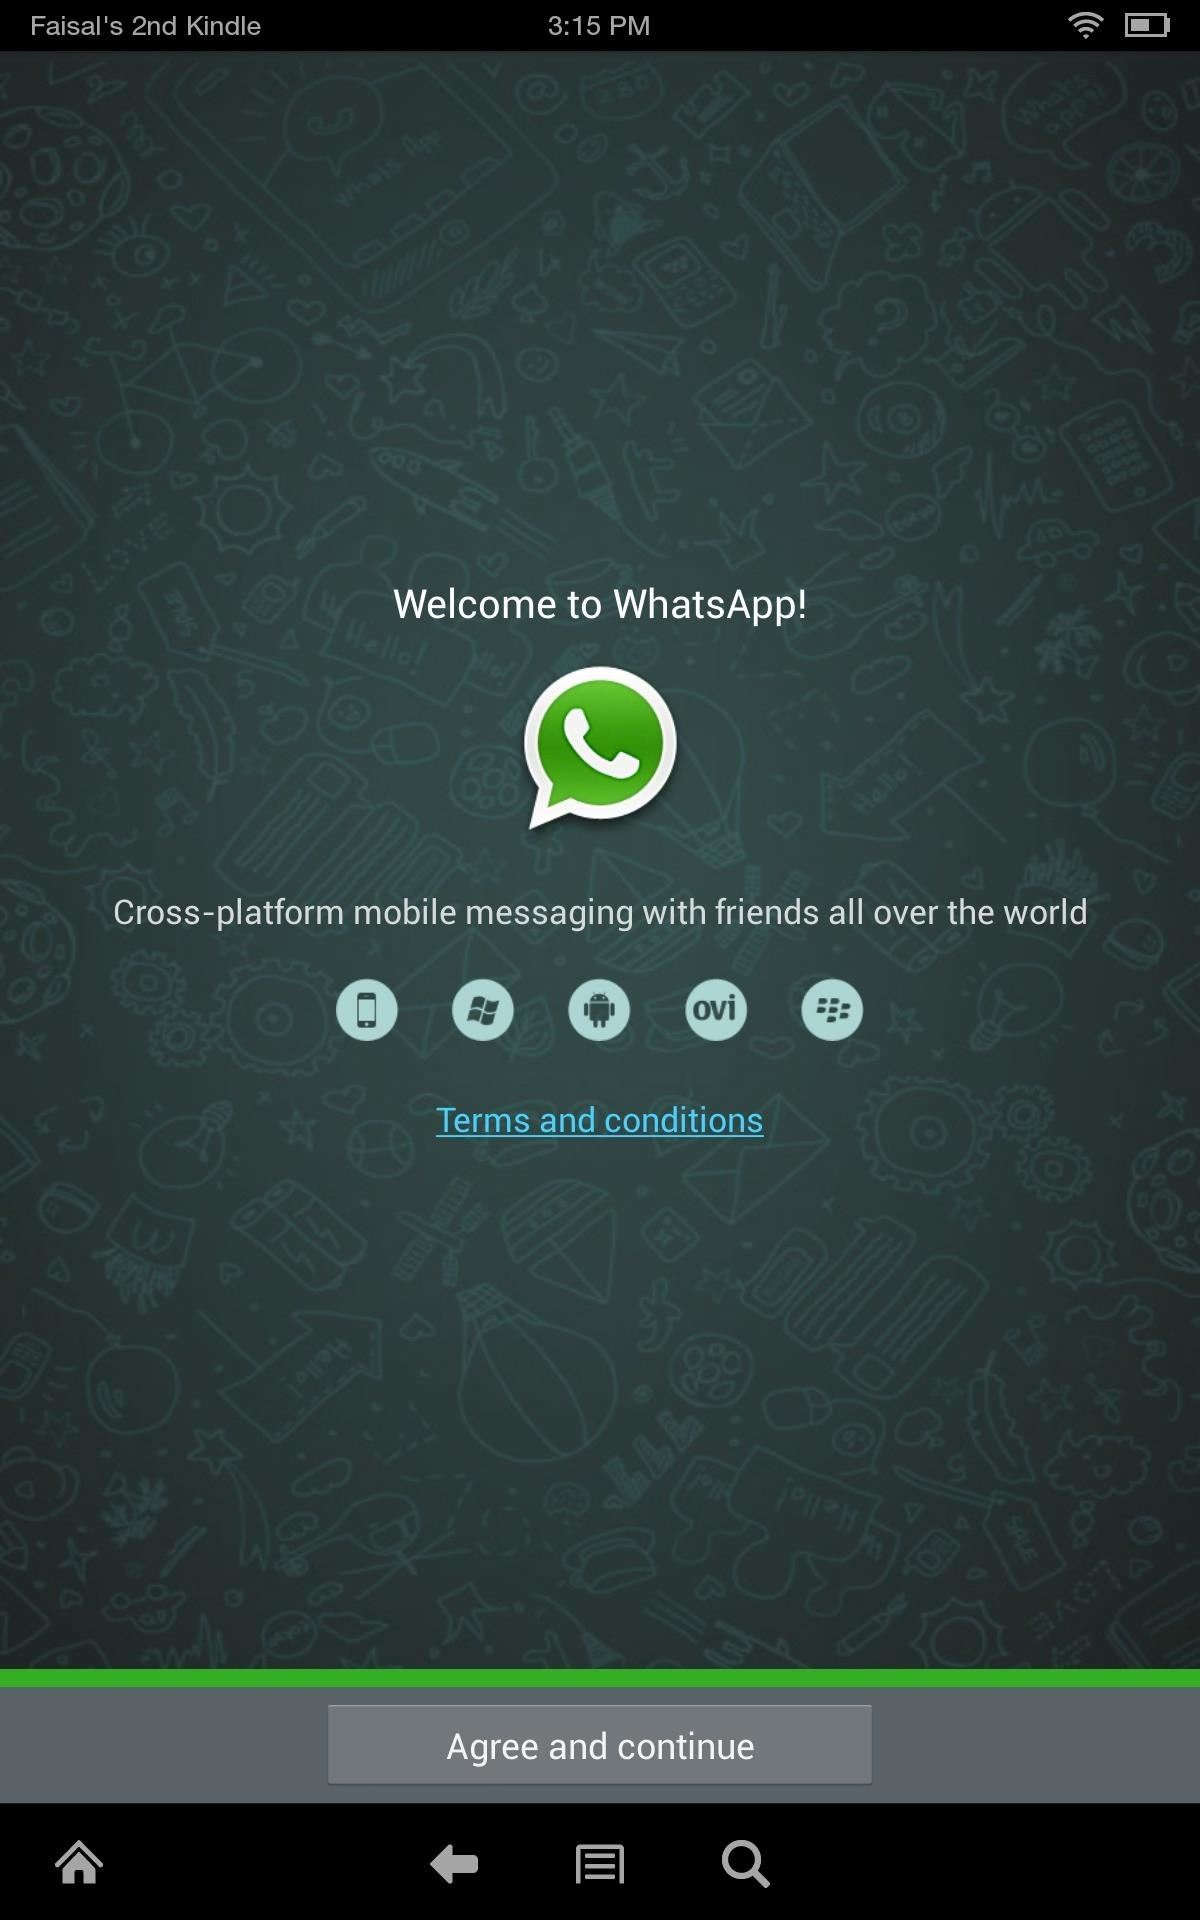 Install WhatsApp on a Kindle Fire HDX or Other Amazon Kindle